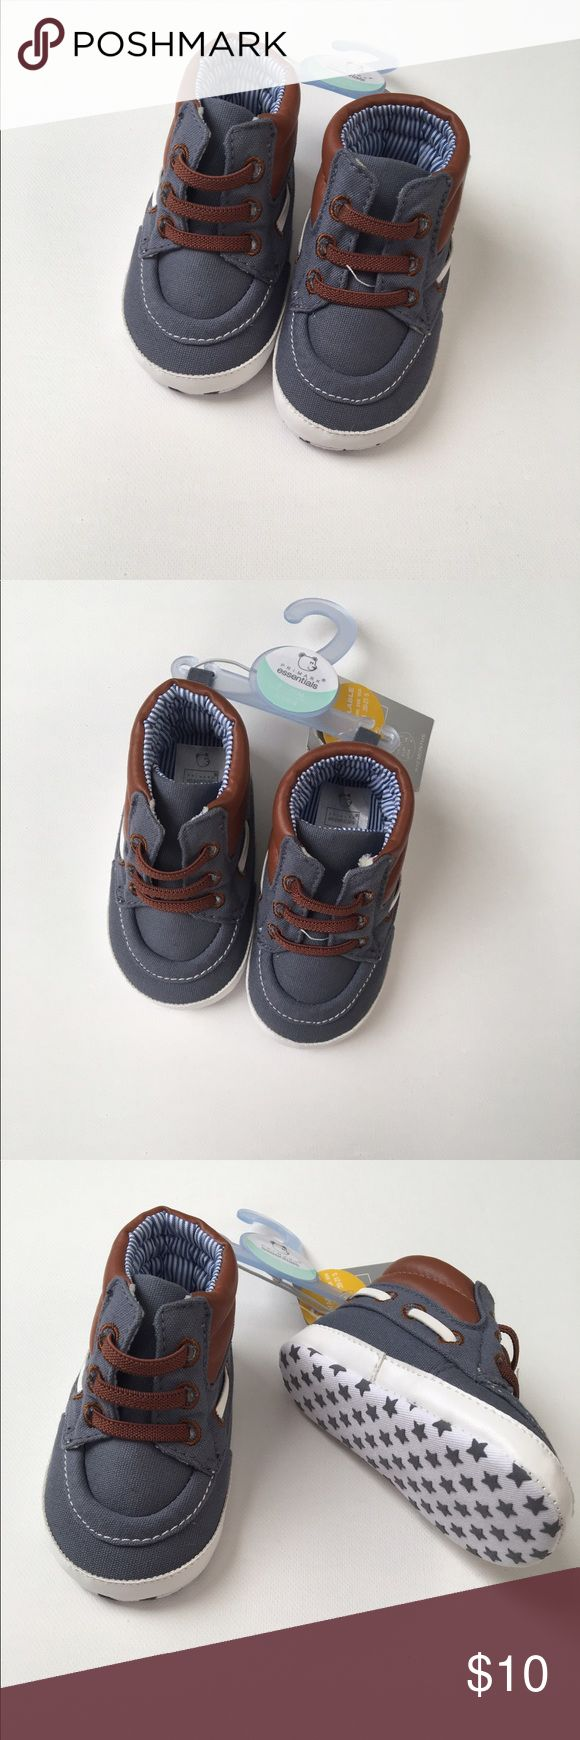 Boys crib shoes Size 9-12 mo. Crib shoes! Adorable casual dress shoe! Brand new! Primark Shoes Baby & Walker